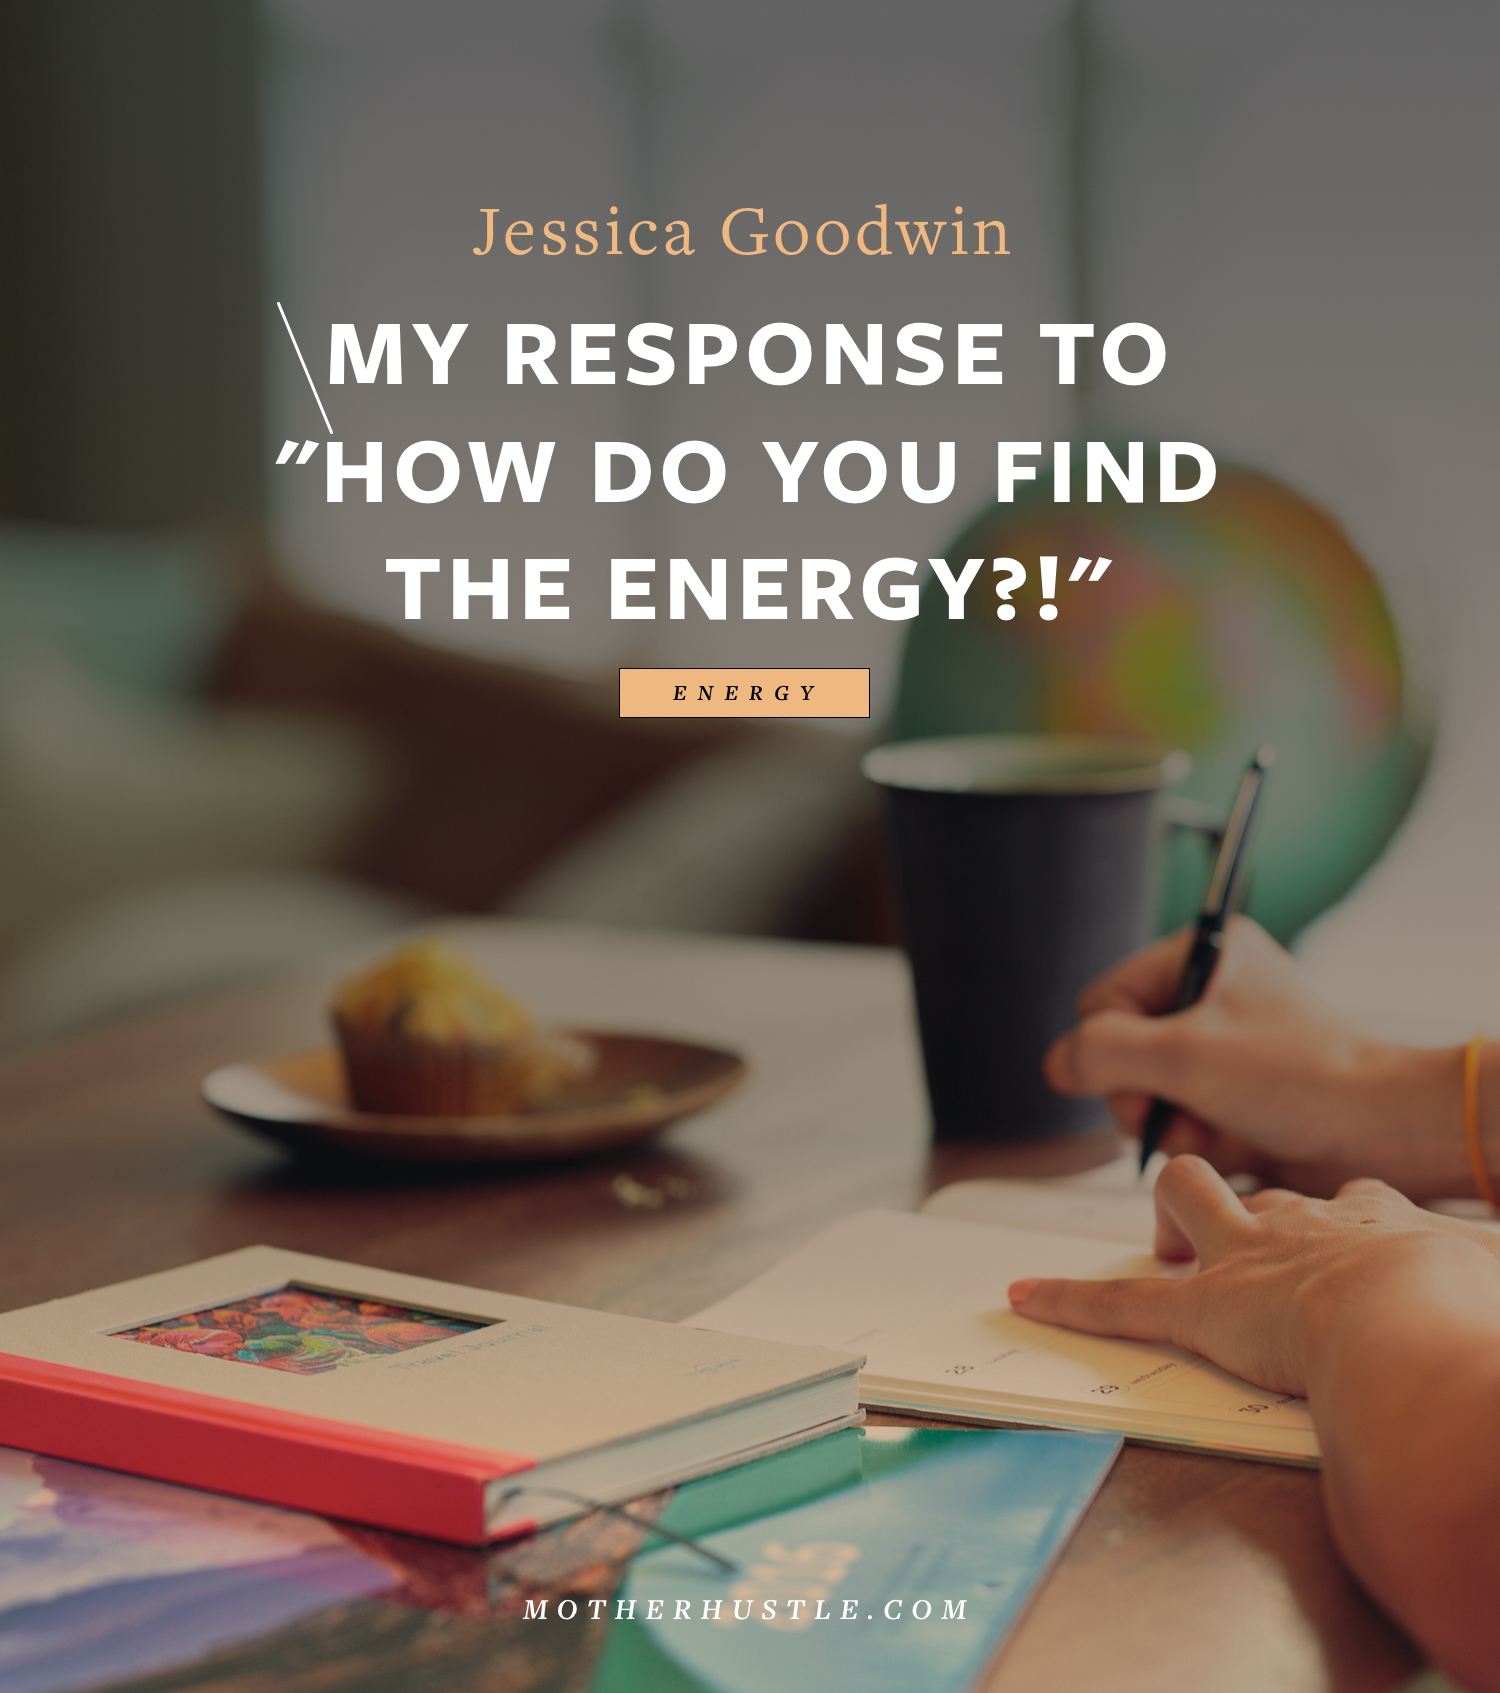 "My Response To ""How Do You Find The Energy?!"""